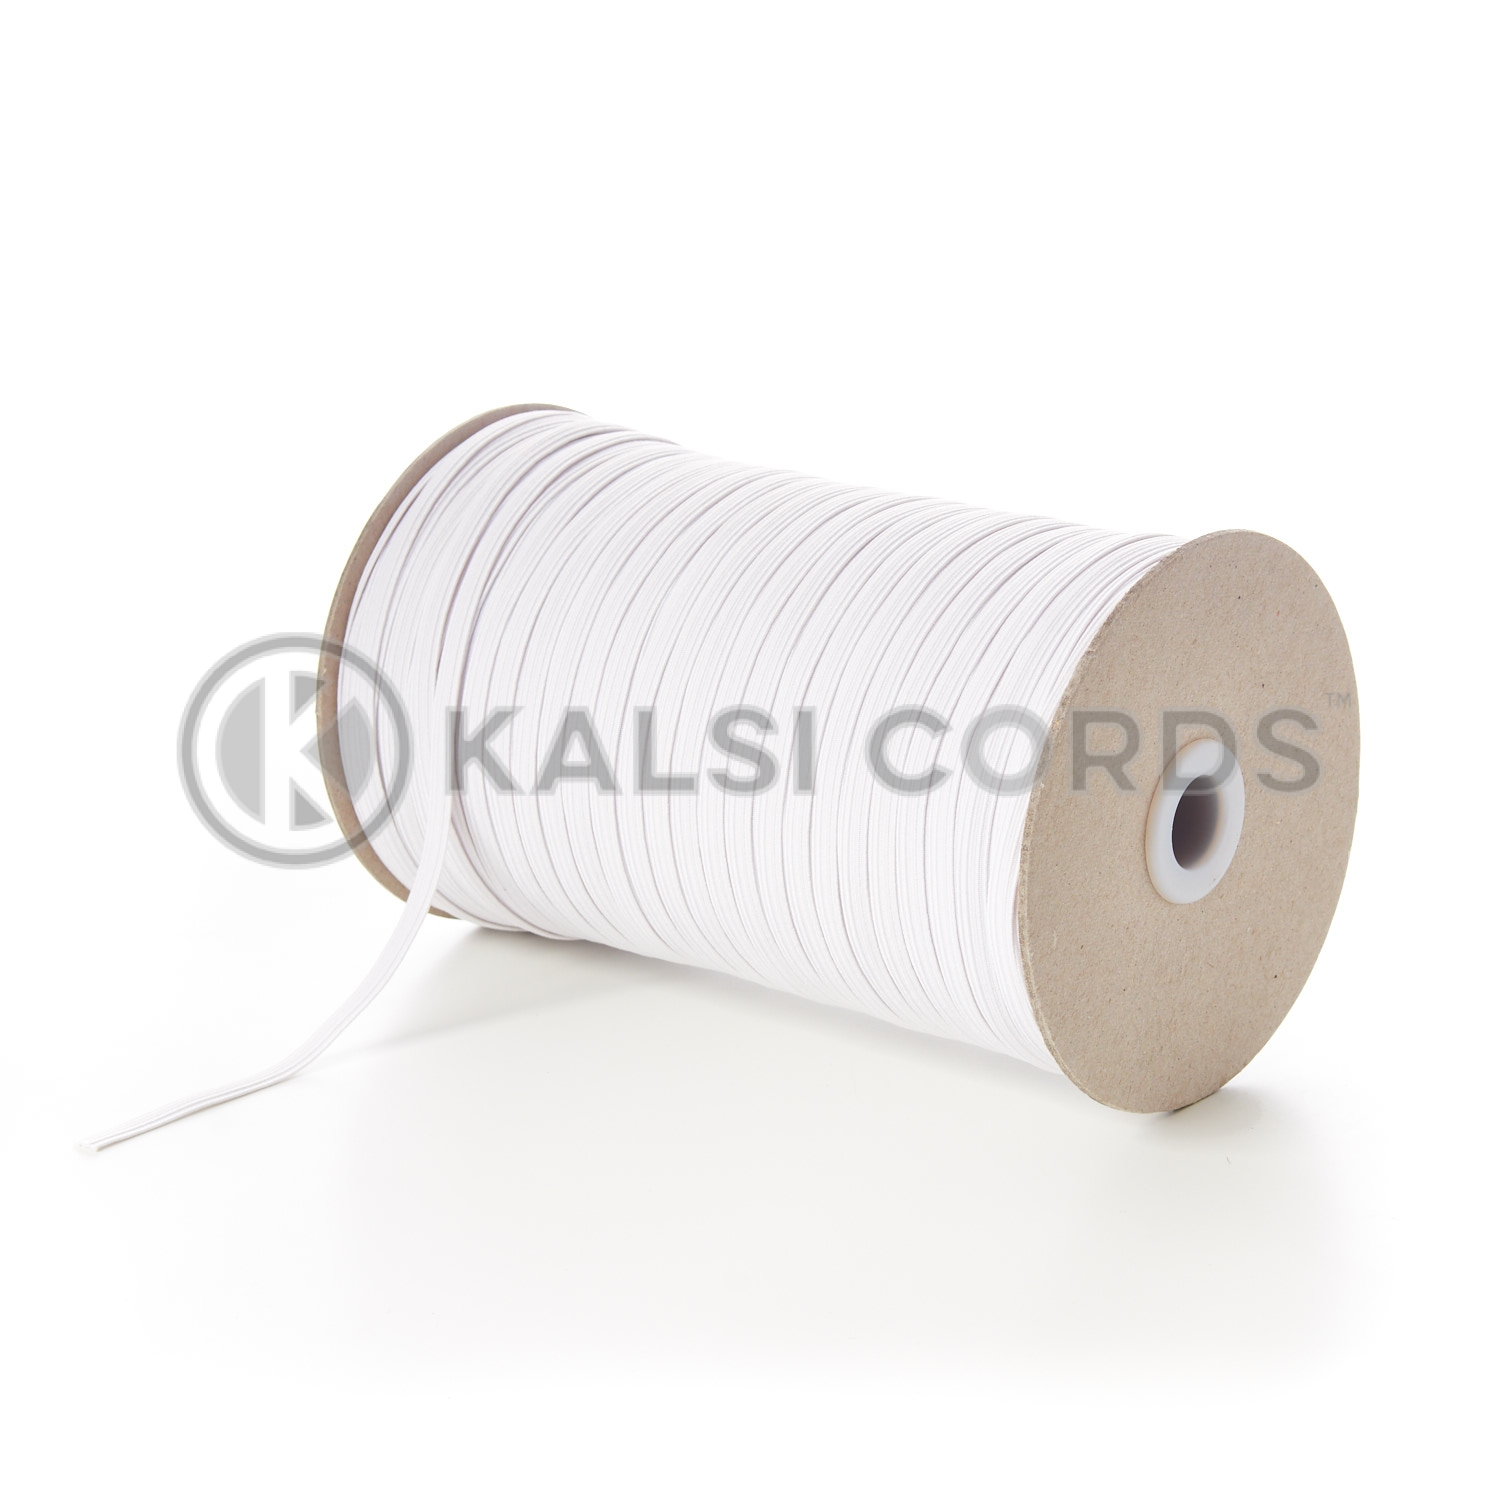 6mm 8 Cord White Flat Braided Elastic Kalsi Cords